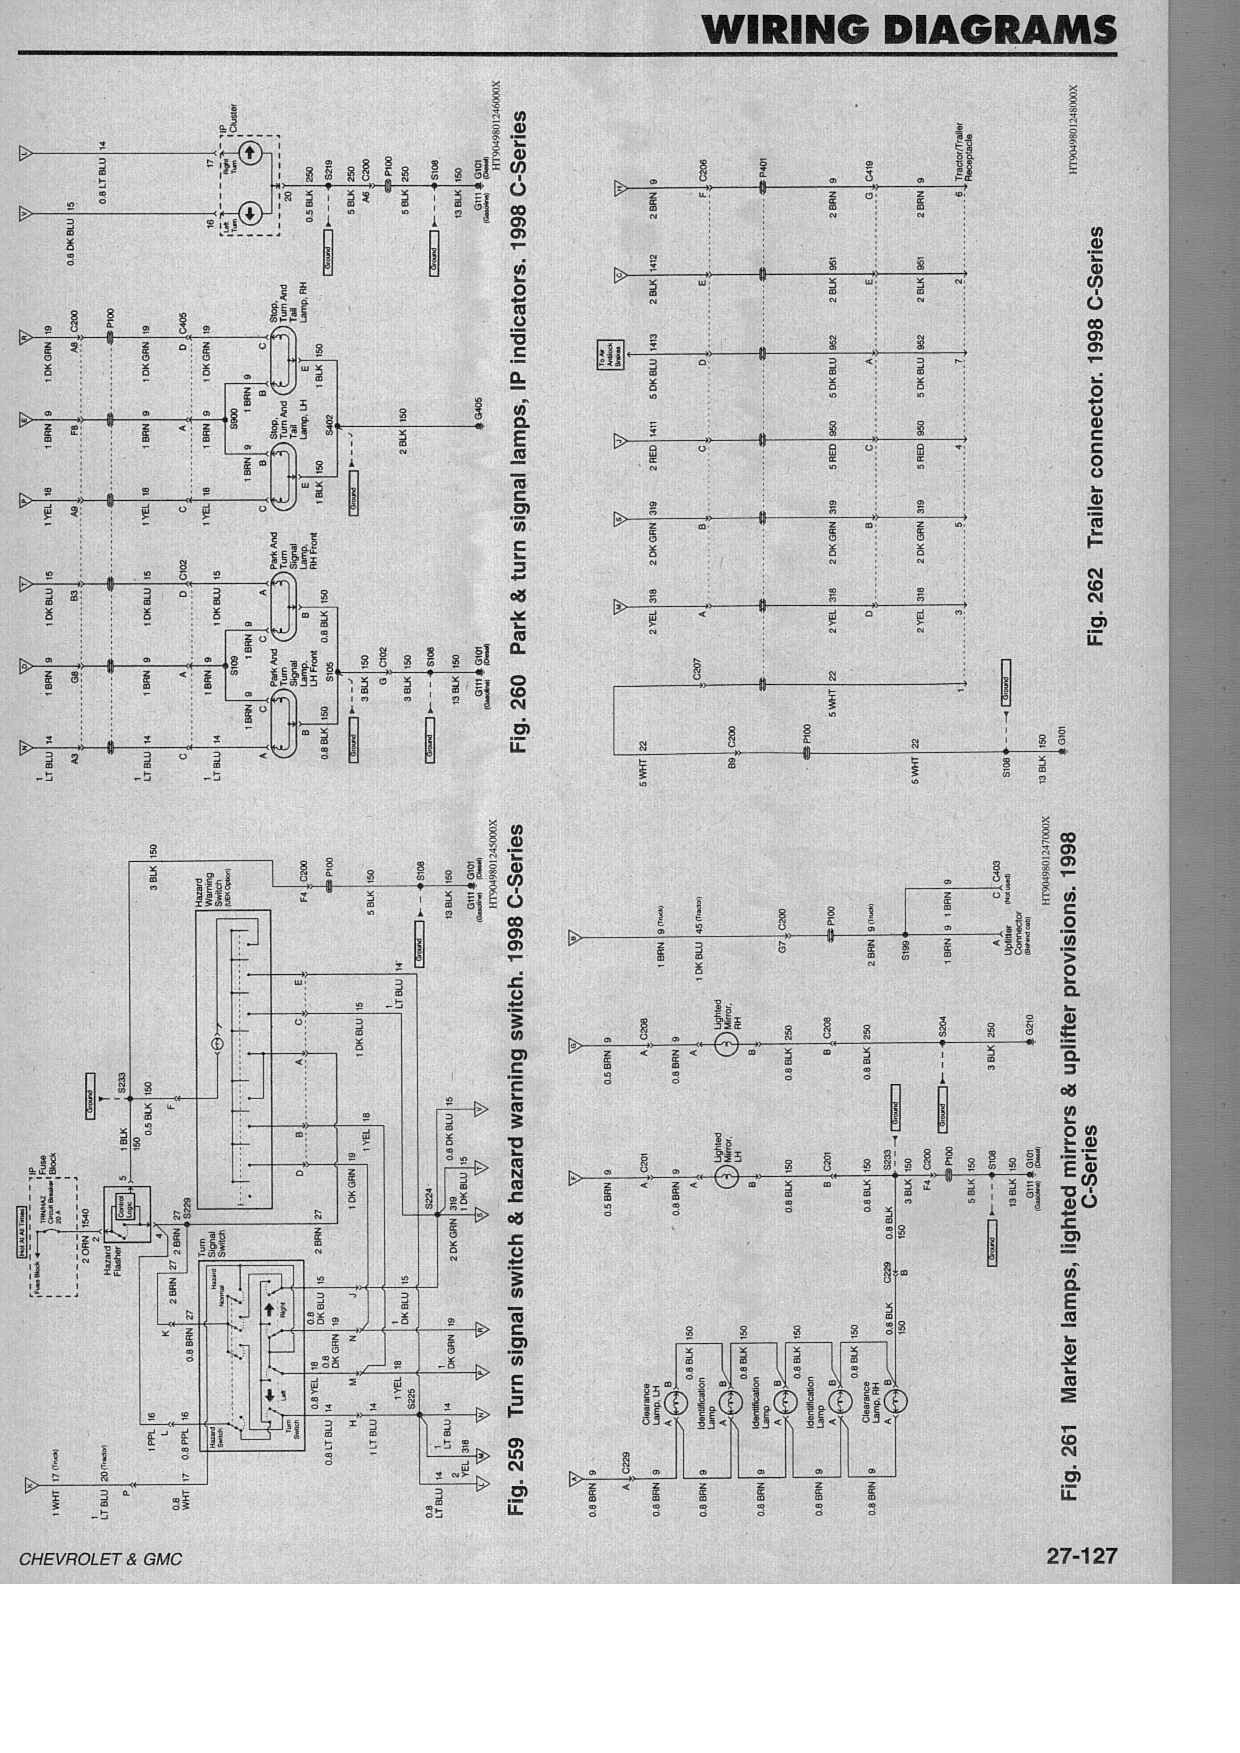 i have a 7500 chevy dump truck in the shop-has cat 3126 ... gmc c6500 wiring schematics #13